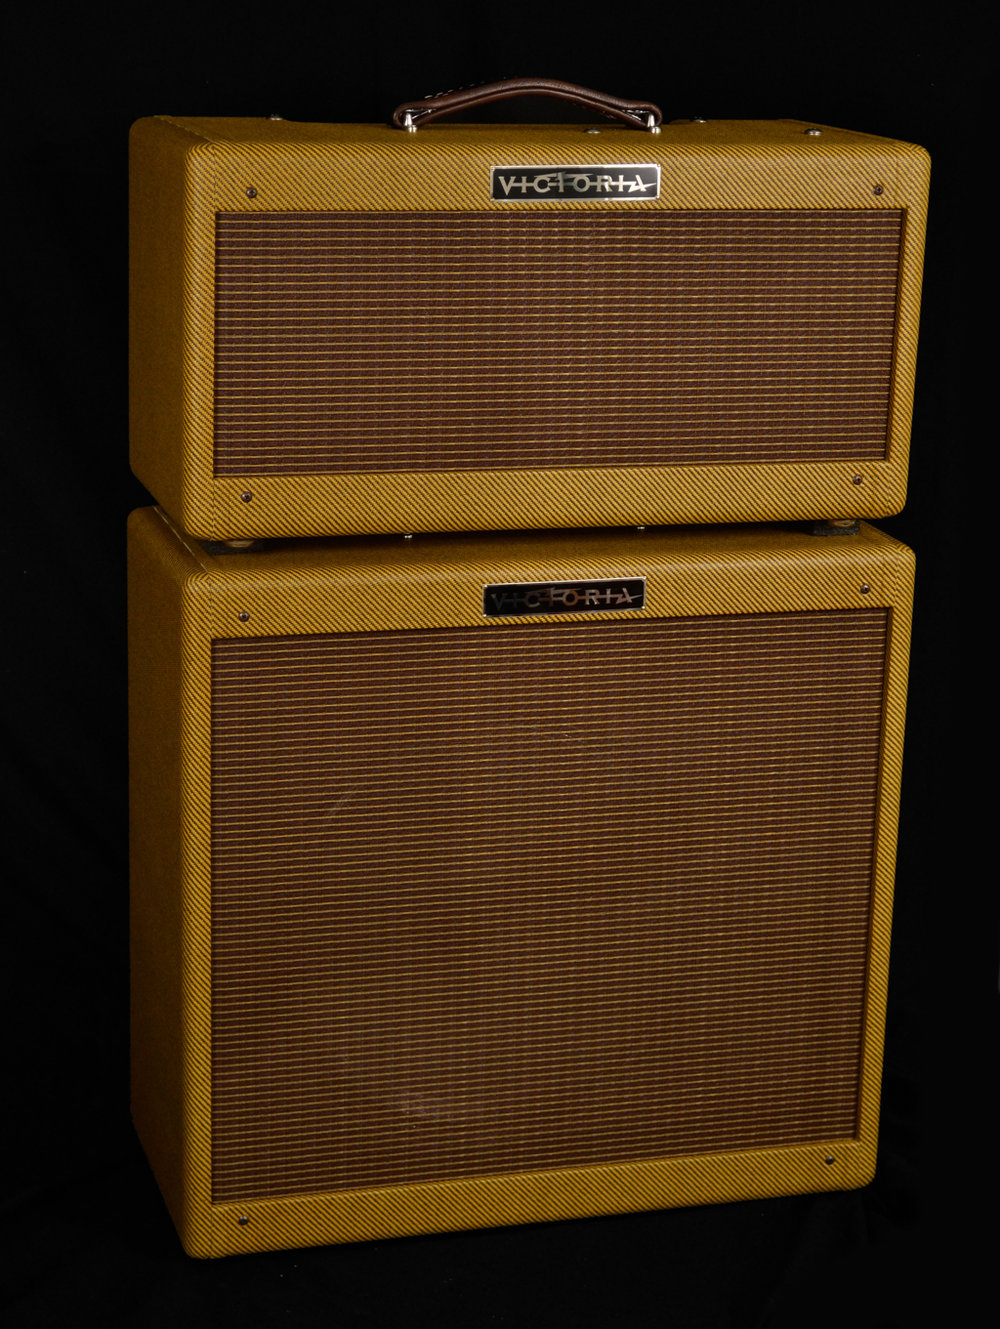 Victoria Double Deluxe   Like two Deluxes in one cabinet, featuring four 6V6GT's.